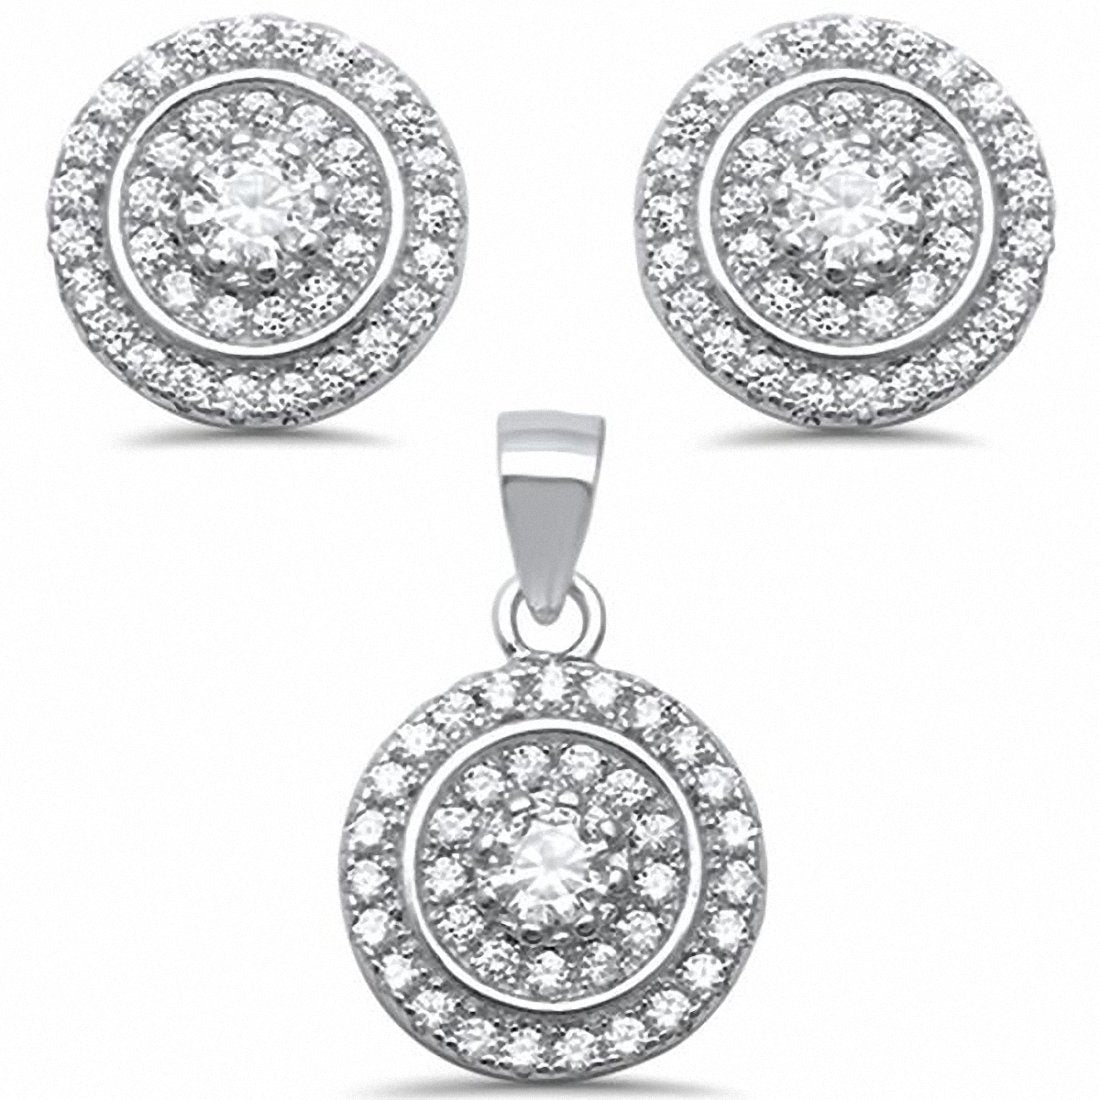 Micro Pave Cubic Zirconia Jewelry Set Round 925 Sterling Silver Choose Color